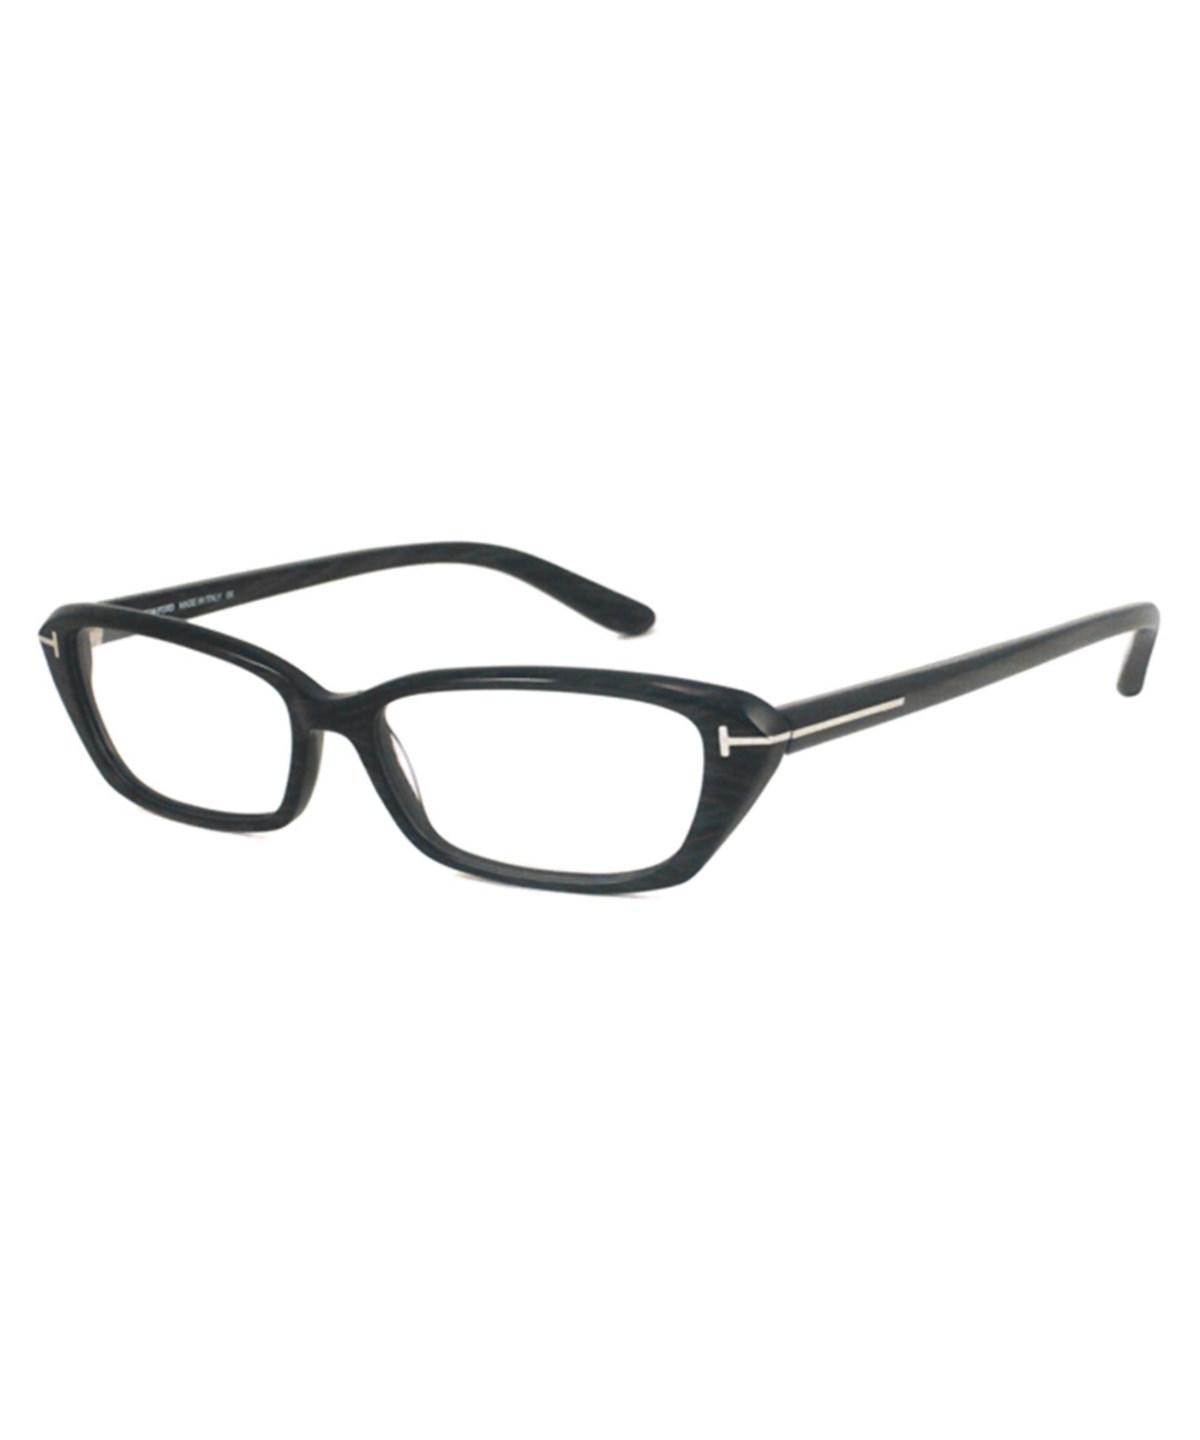 15b0f7bb0c8 Tom Ford Square Eyeglasses Ft5288 005 51 In Black